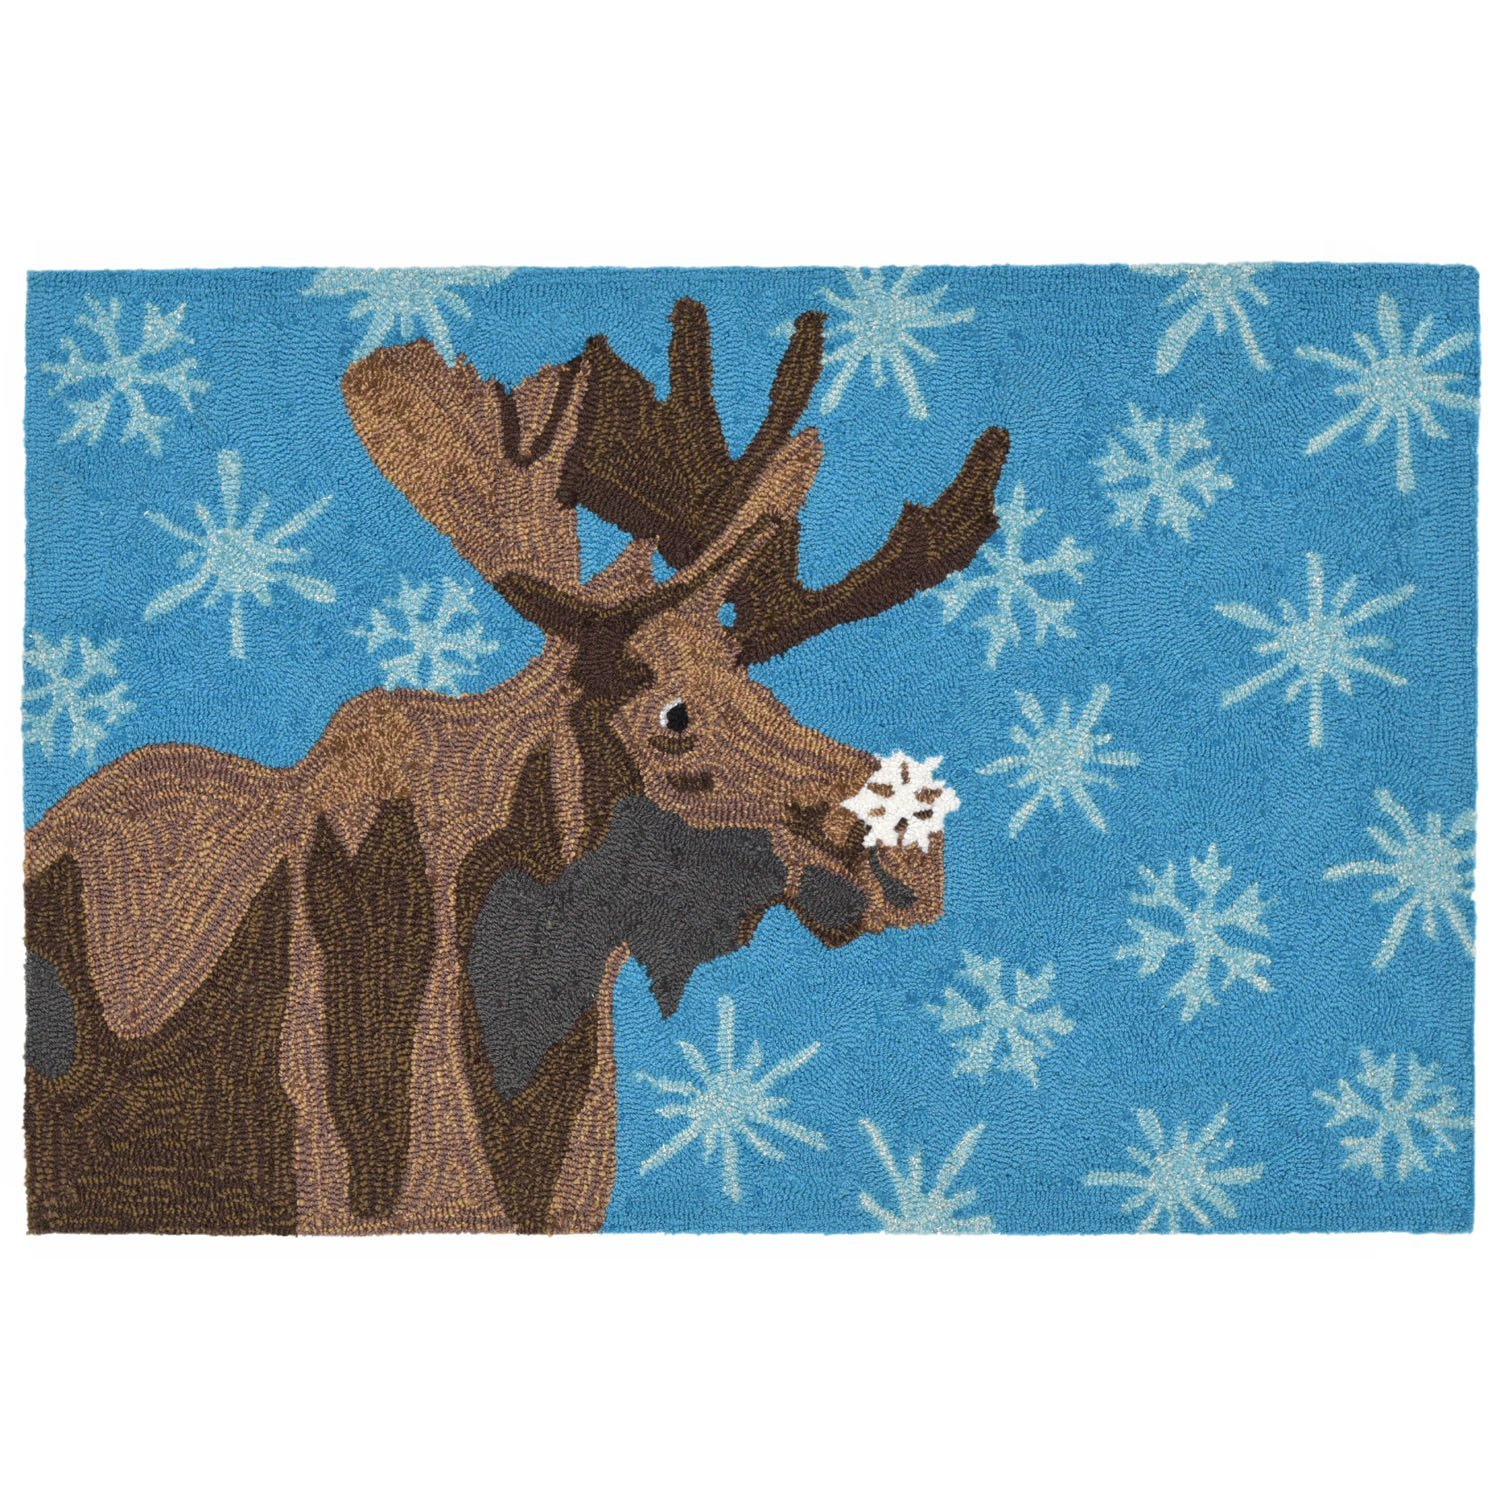 Liora Manne Whimsy December Moose Rug, Blue, 20x30 20x30 The Trans Ocean Group FT112B03403